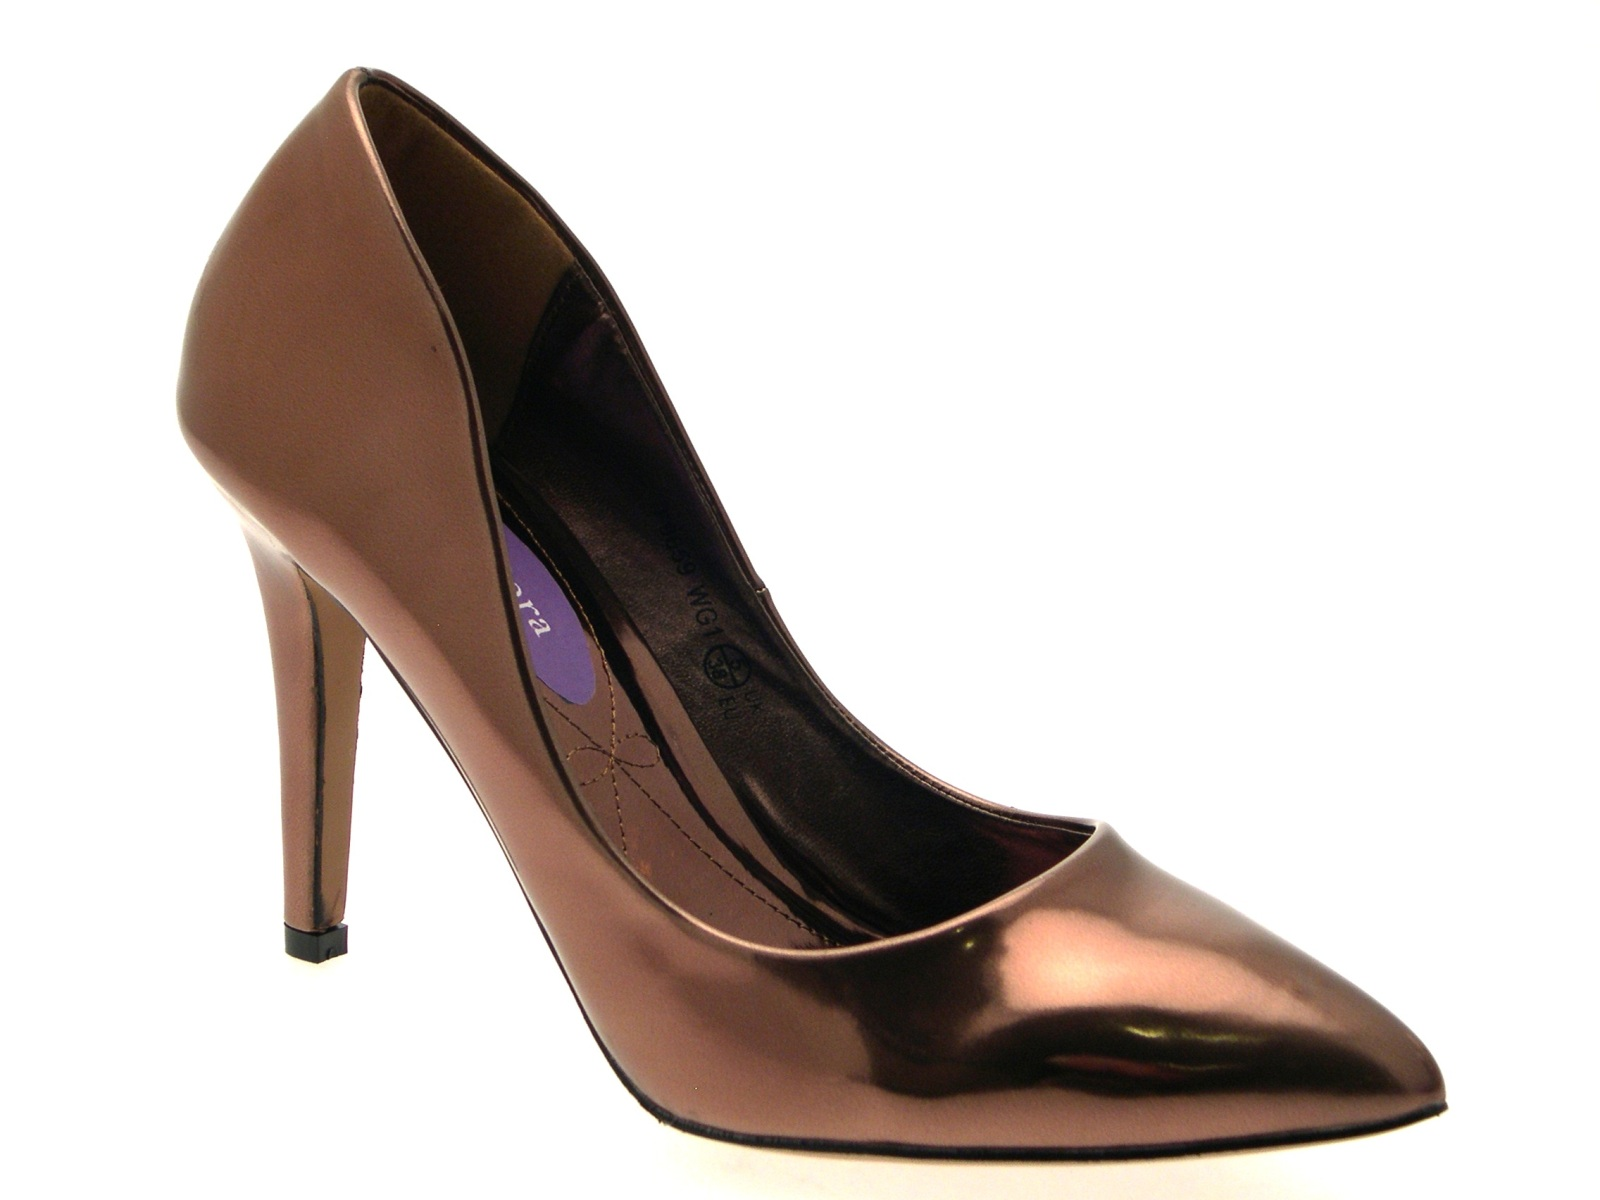 Womens-Metallic-Pointed-Toe-Court-Stiletto-High-Heels-Ladies-Work-Office-Shoes thumbnail 12